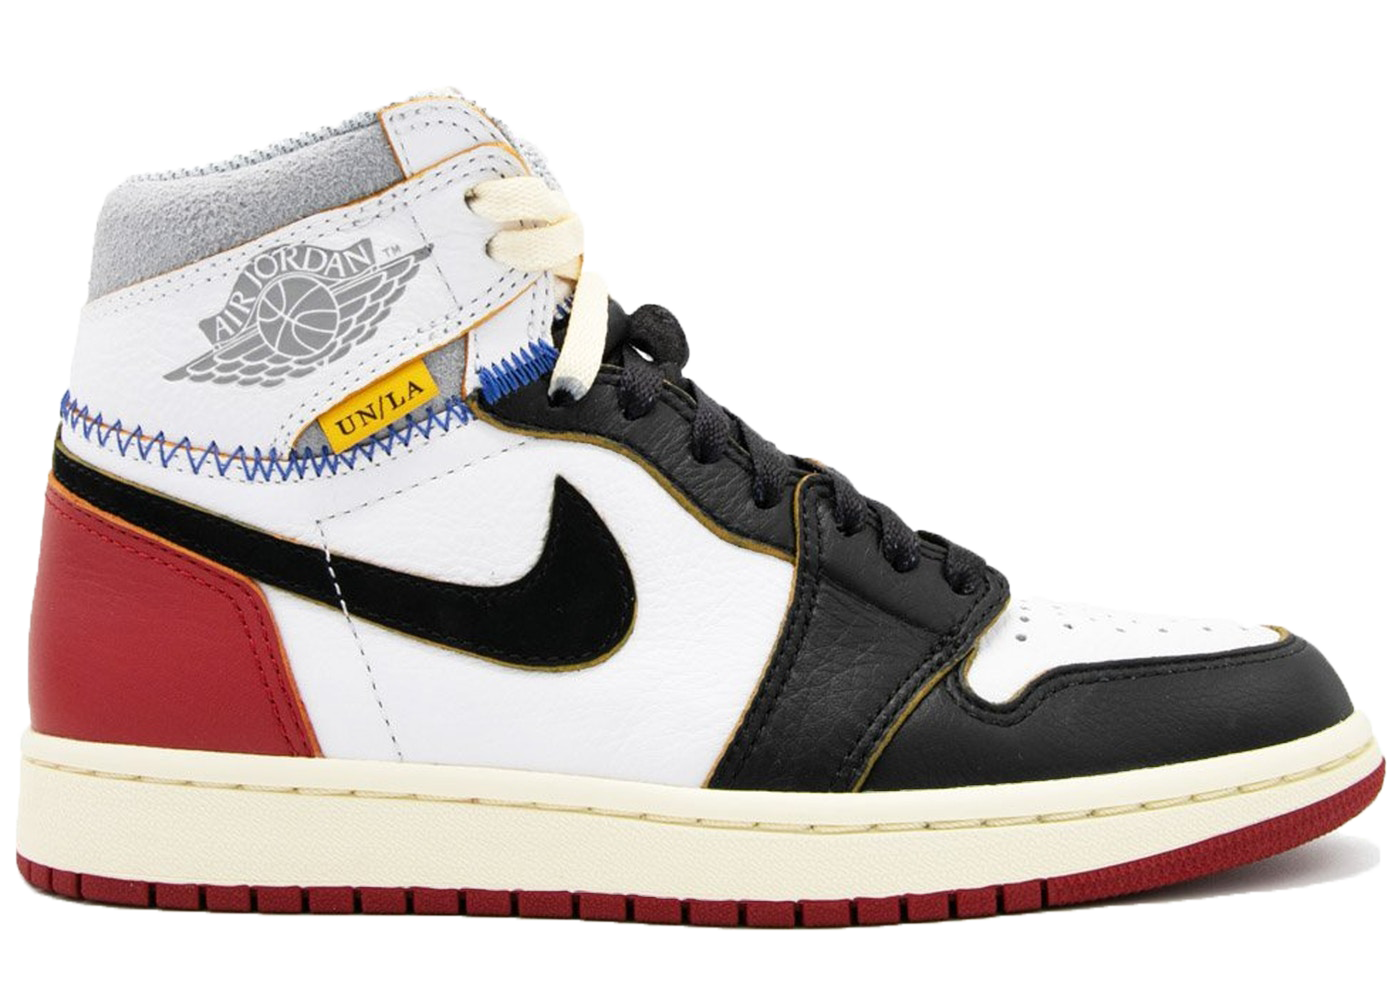 Jordan 1 Retro High Union Los Angeles Black Toe - Baza Bazaar